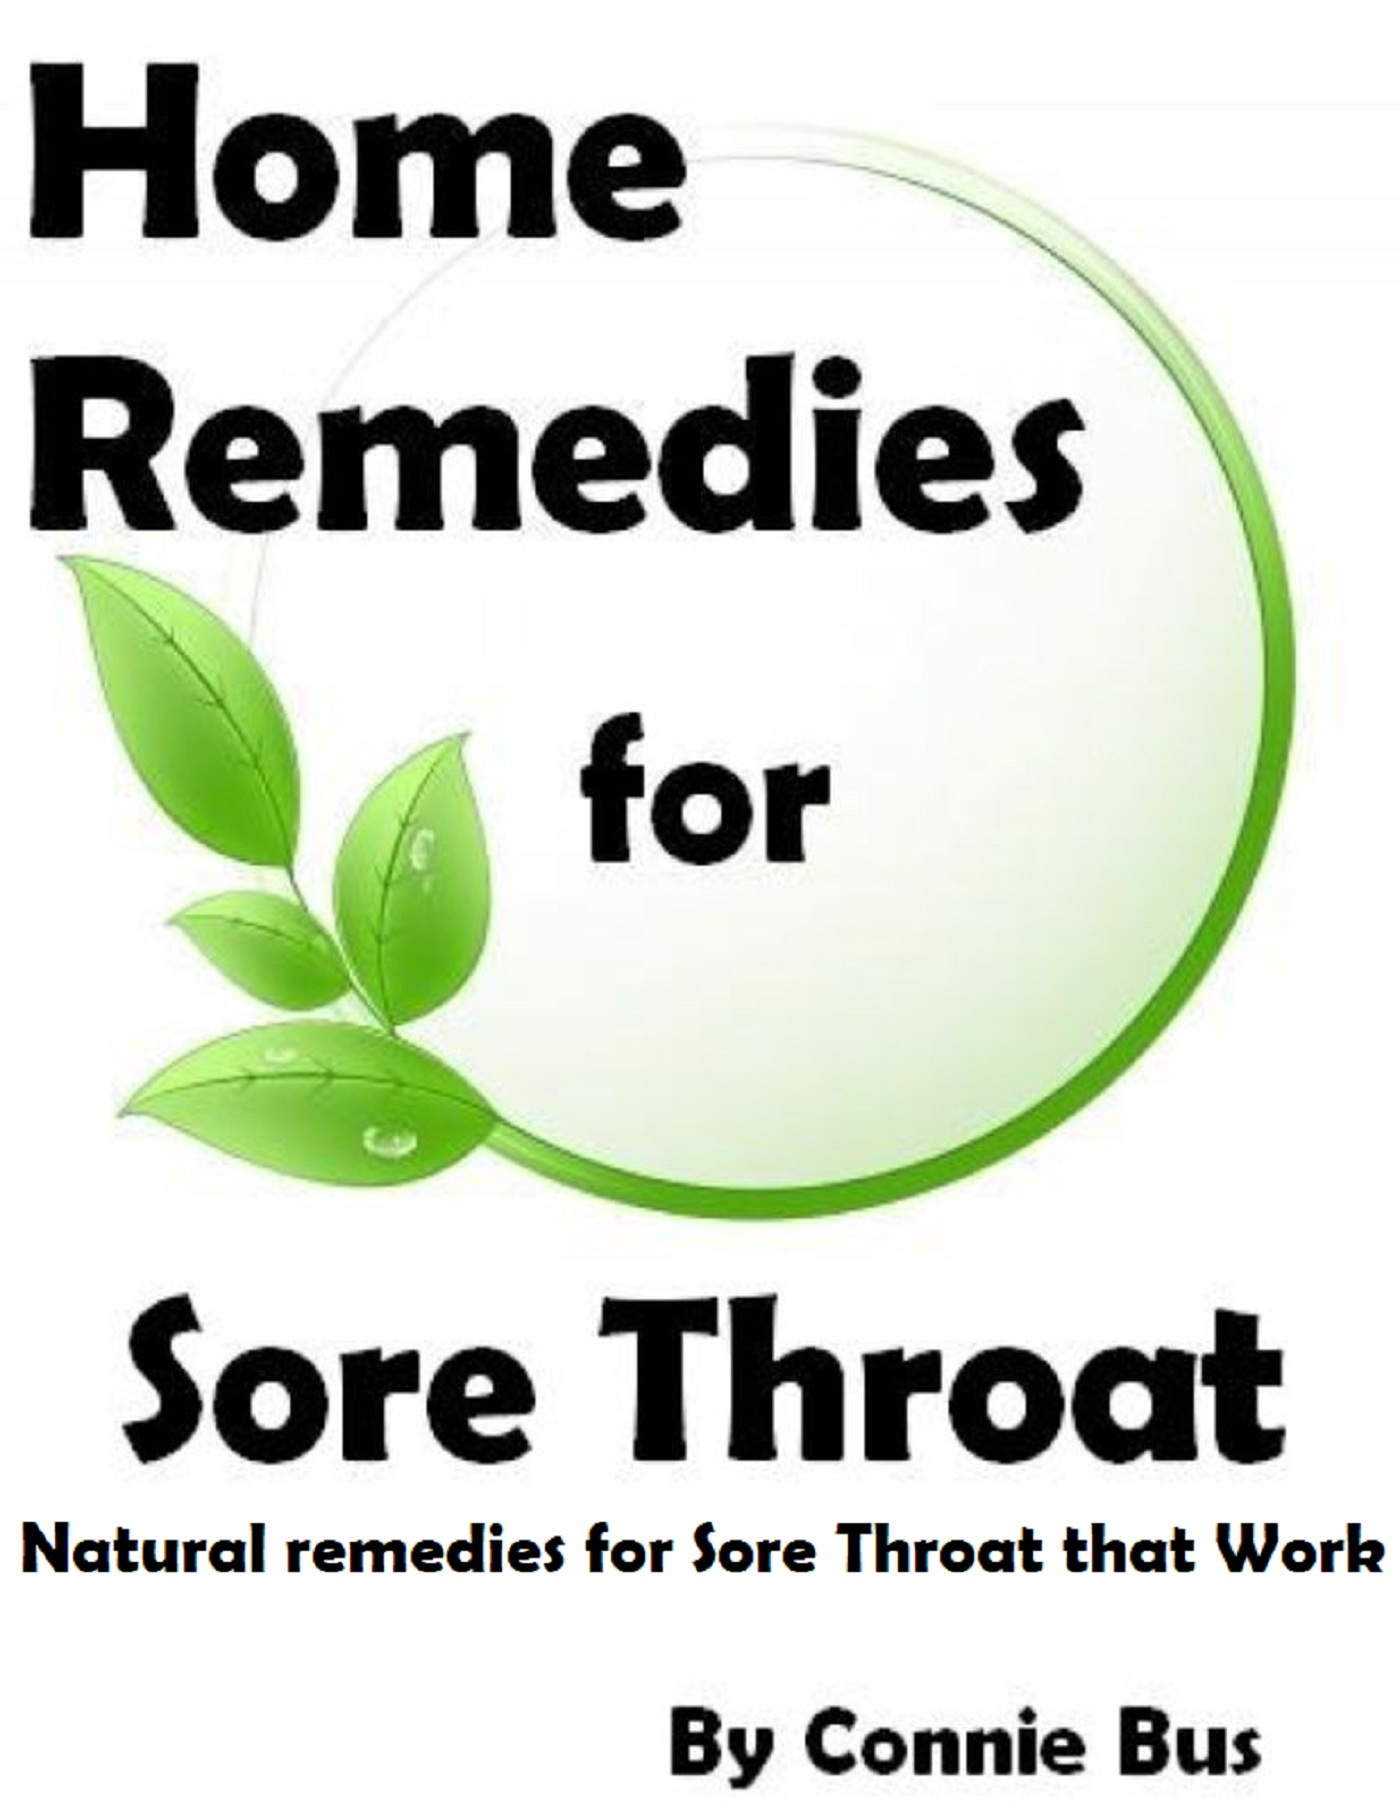 Home Remedies for Sore Throat: Natural Remedies for Sore Throat that Work